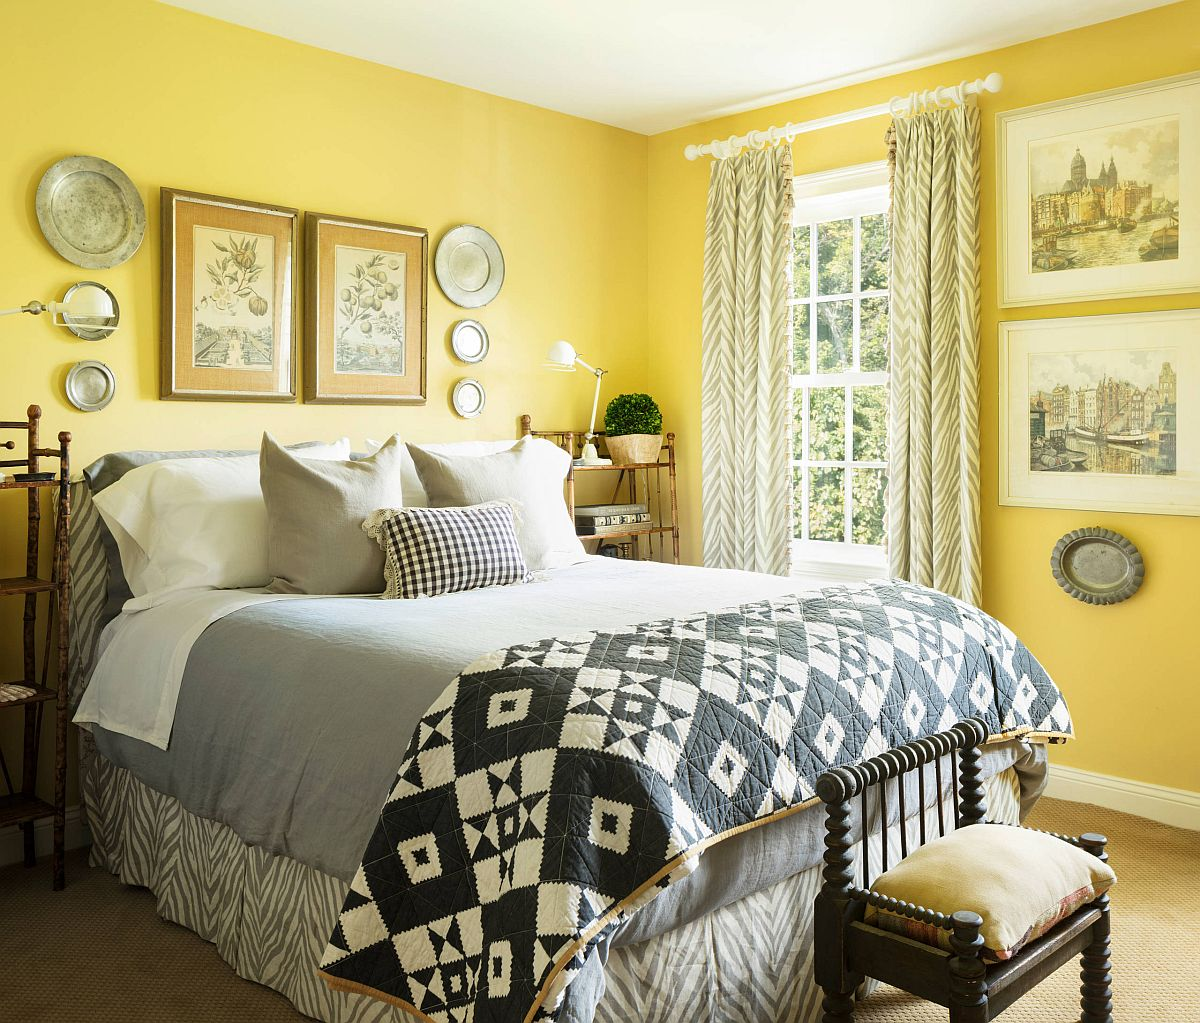 Traditional-bedroom-with-gray-and-yellow-color-scheme-and-ample-naural-light-69074